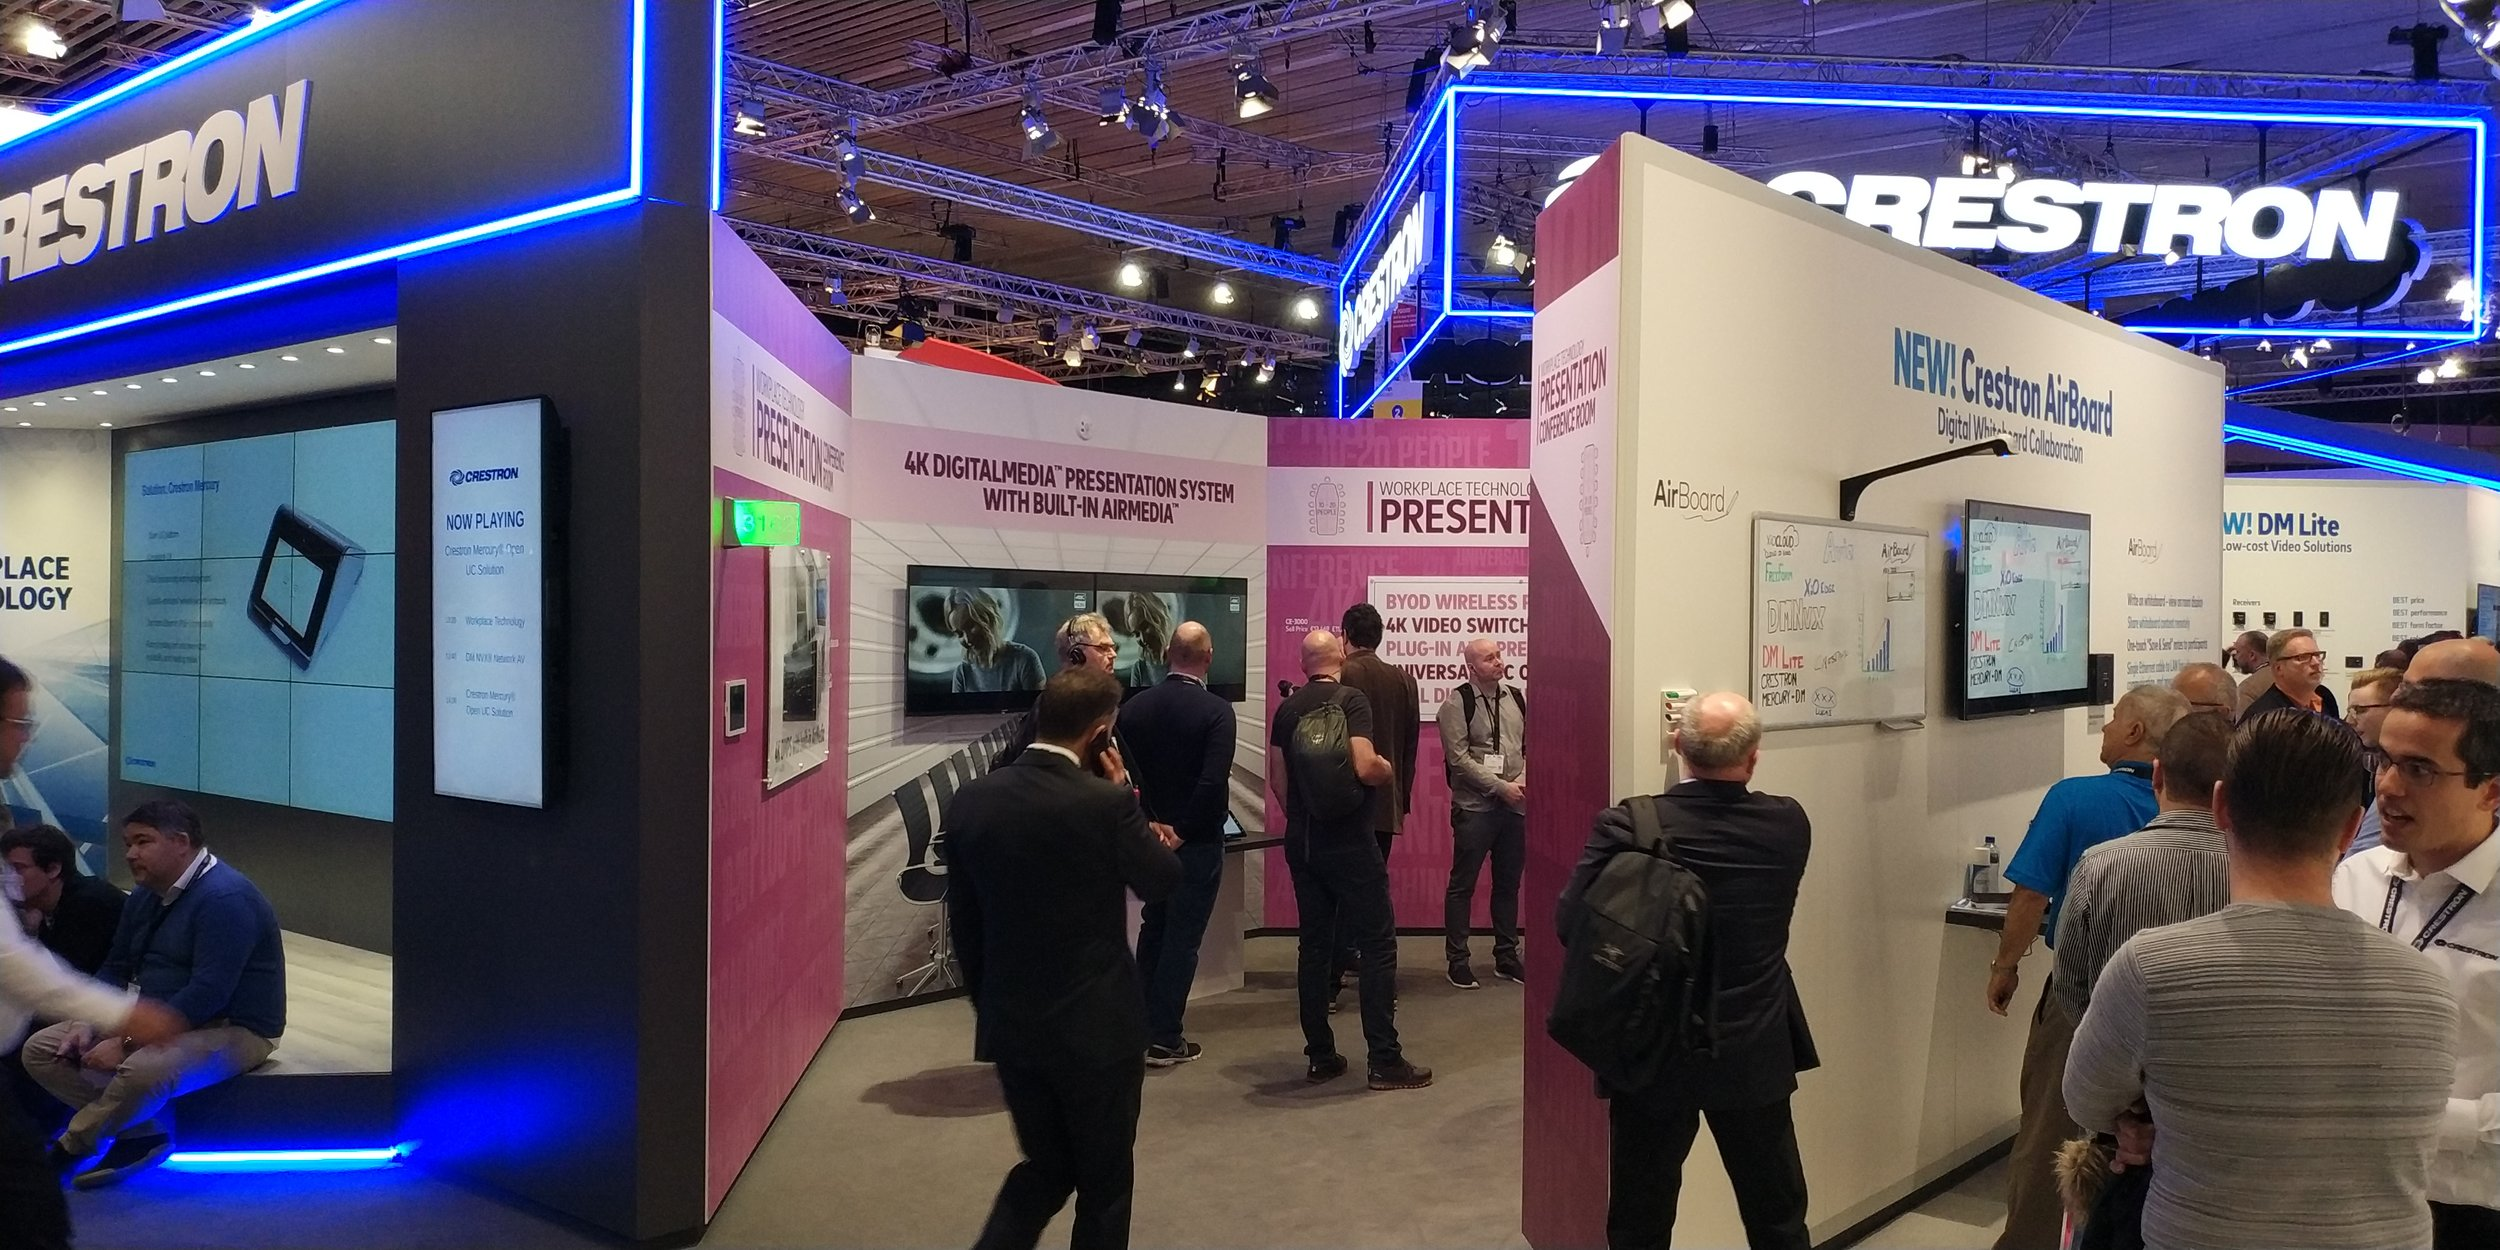 Crestron had a strong show presence at ISE 2018